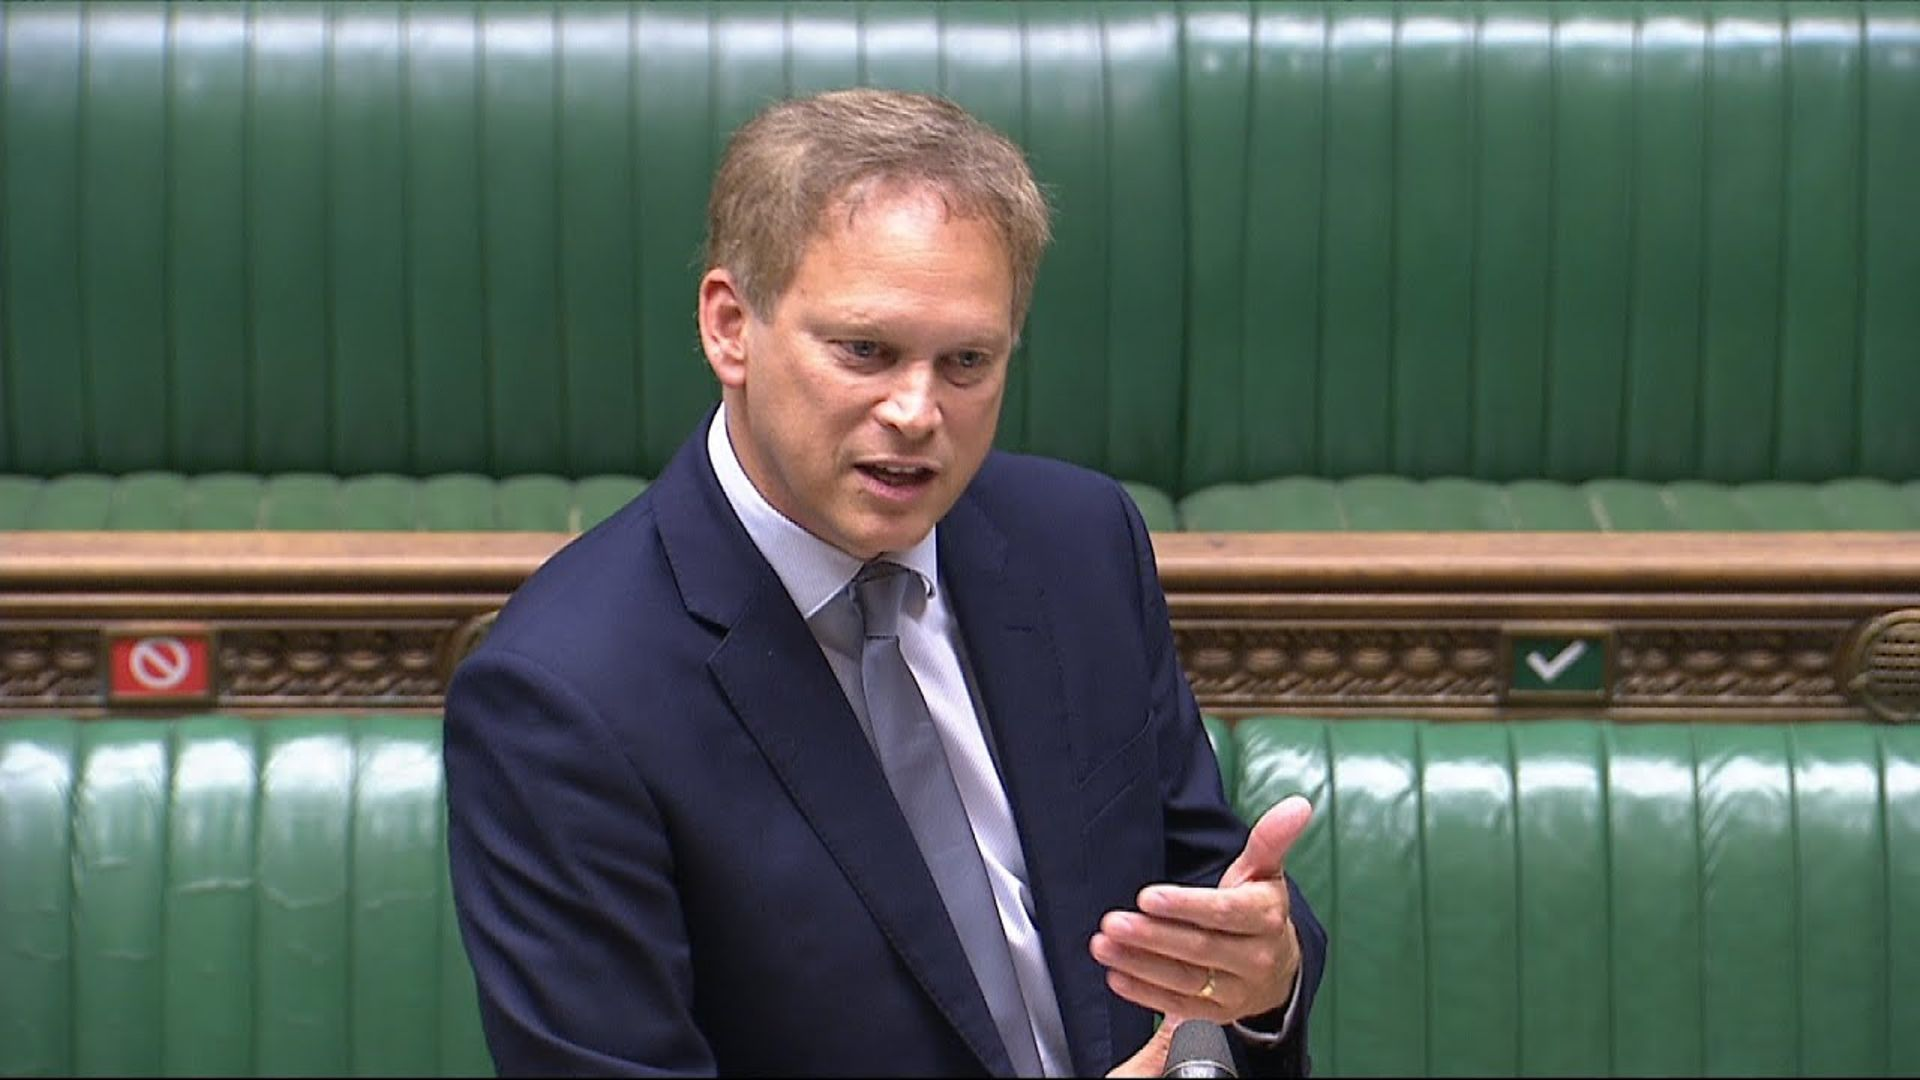 Grant Shapps in the House of Commons - Credit: Parliament Live